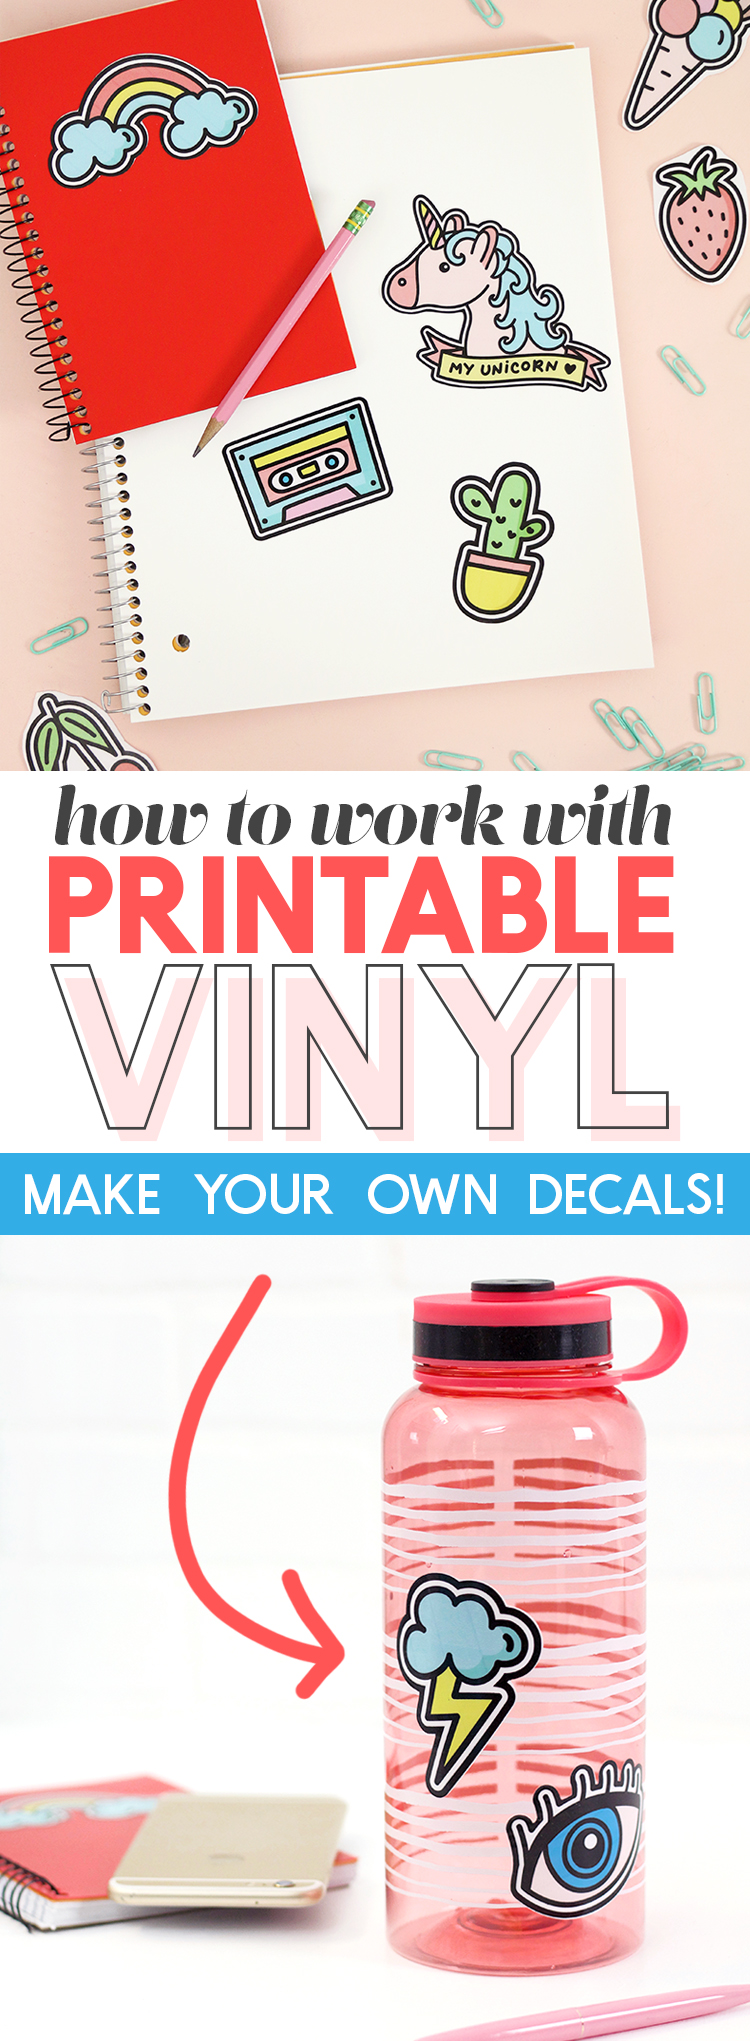 image about Printable Vinyl Decal Instructions identify How in the direction of Perform with Printable Vinyl: Do it yourself Vinyl Stickers